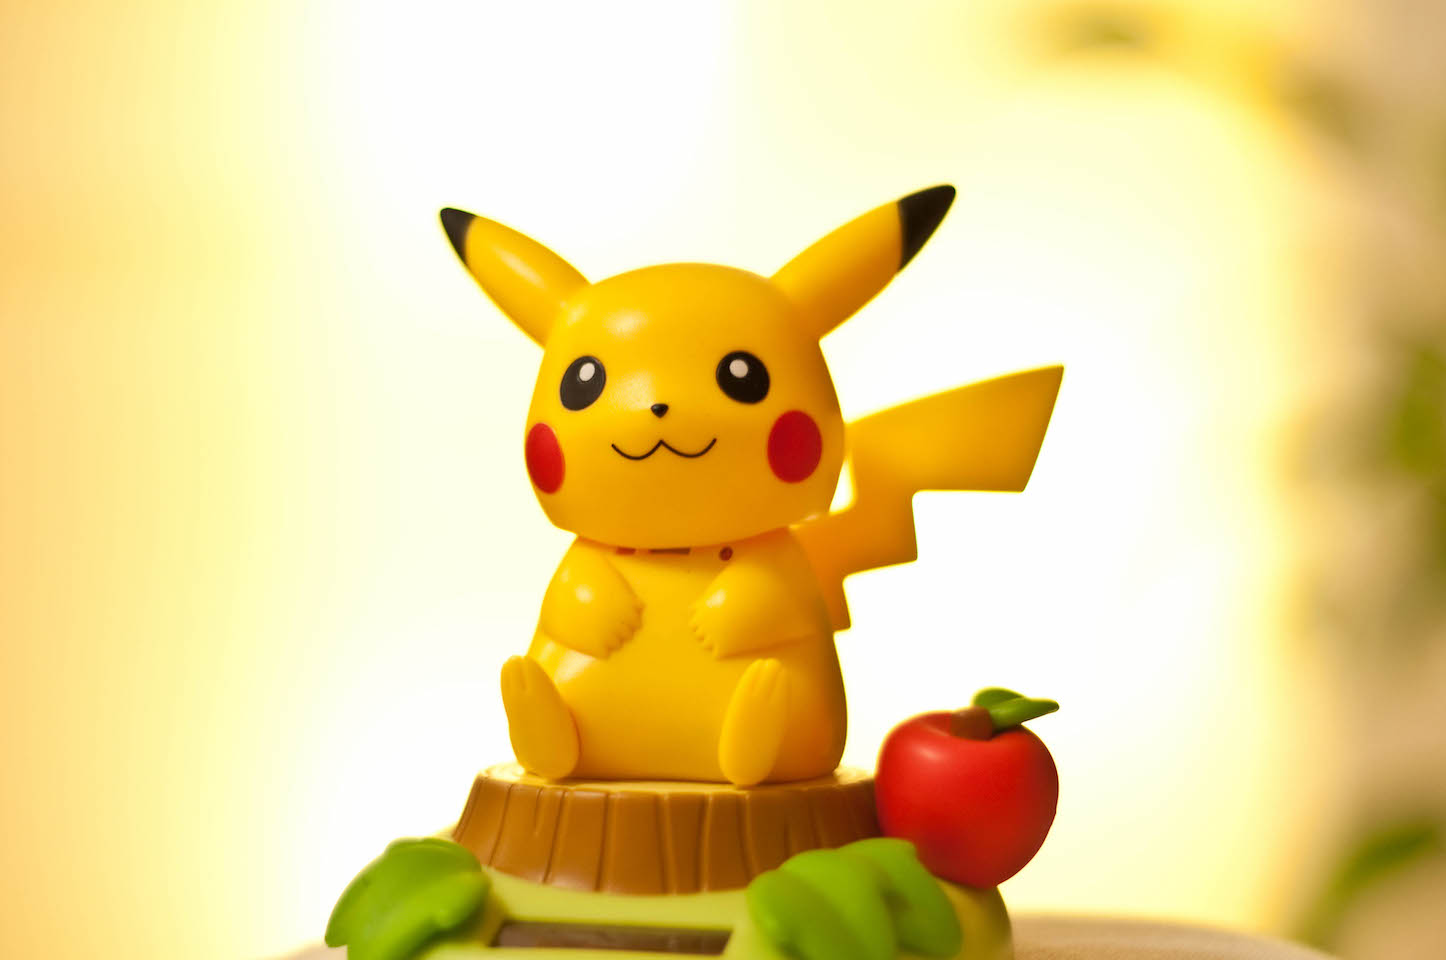 Pikachu sitting on top of a tree trunk